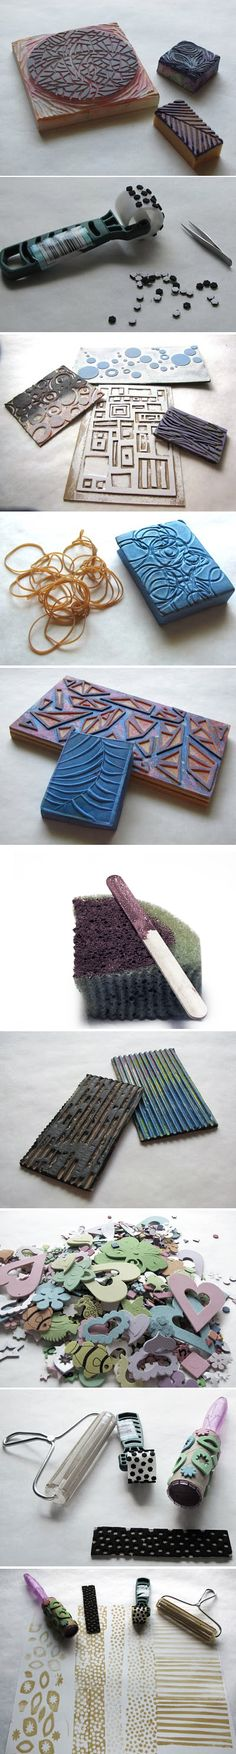 many DIY stamp ideas  instructions -- Good for texture in clay.